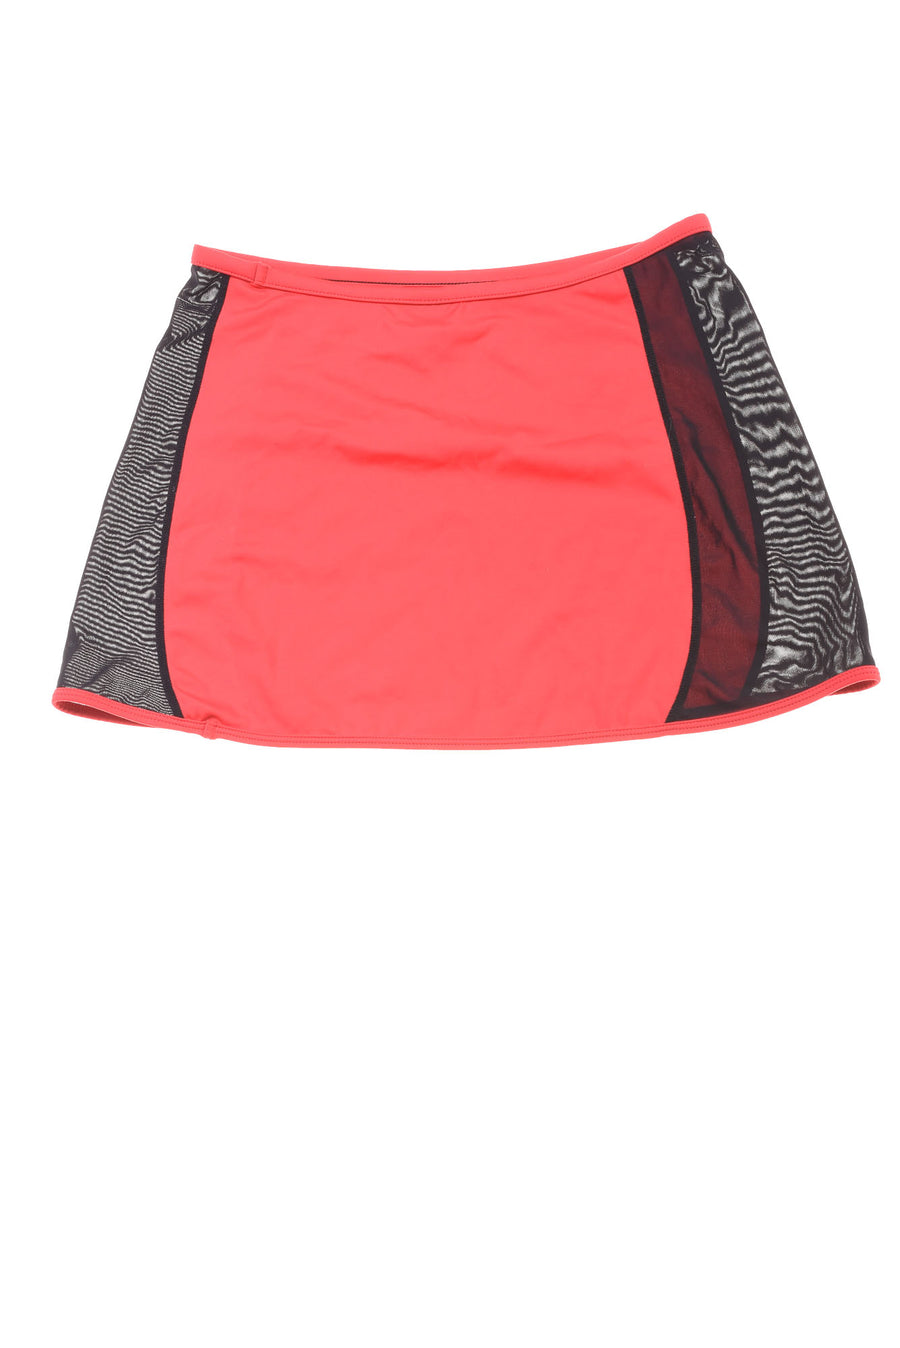 USED Nike Women's Skirt Small Red & Black